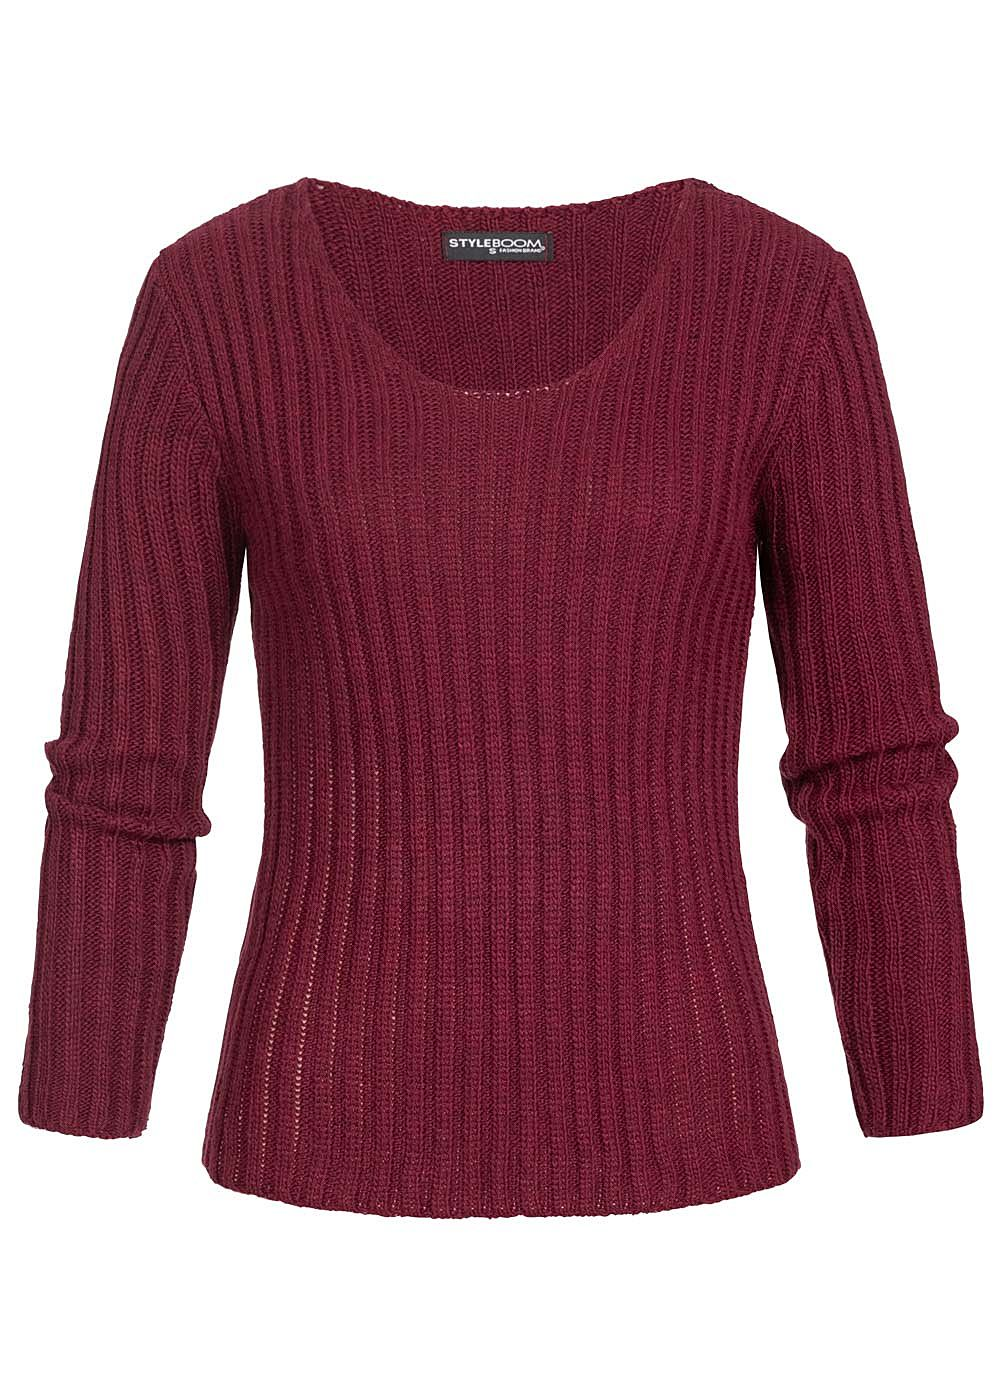 Styleboom Fashion Damen Ripped-V-Neck Strick Pullover bordeaux rot - Art.-Nr.: 19116910